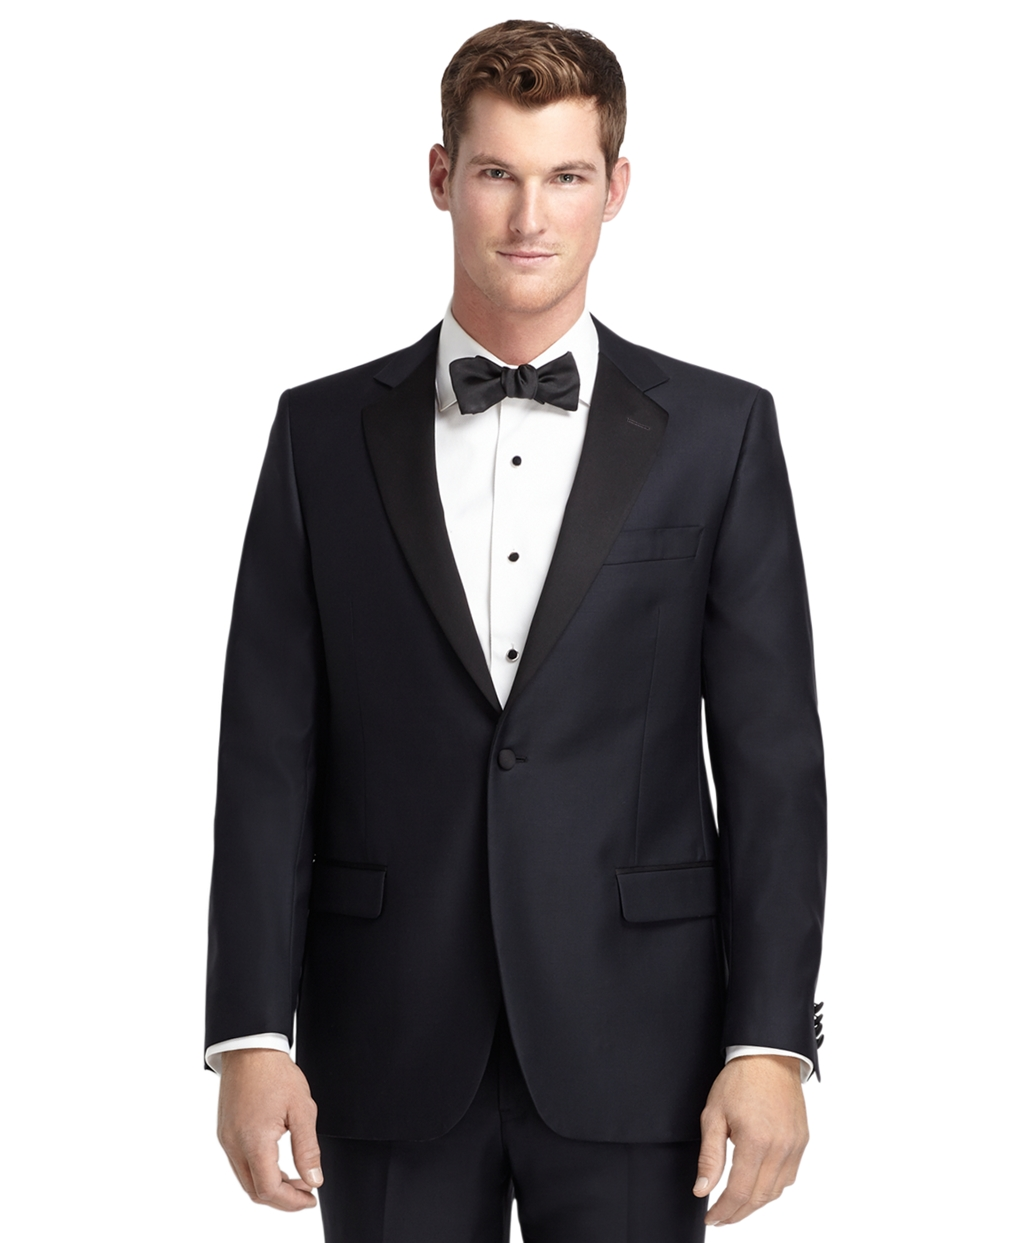 1920s Mens Evening Wear: Tuxedos and Dinner Jackets Brooks Brothers Mens 1818 One-Button Fitzgerald Navy Tuxedo $1,198.00 AT vintagedancer.com